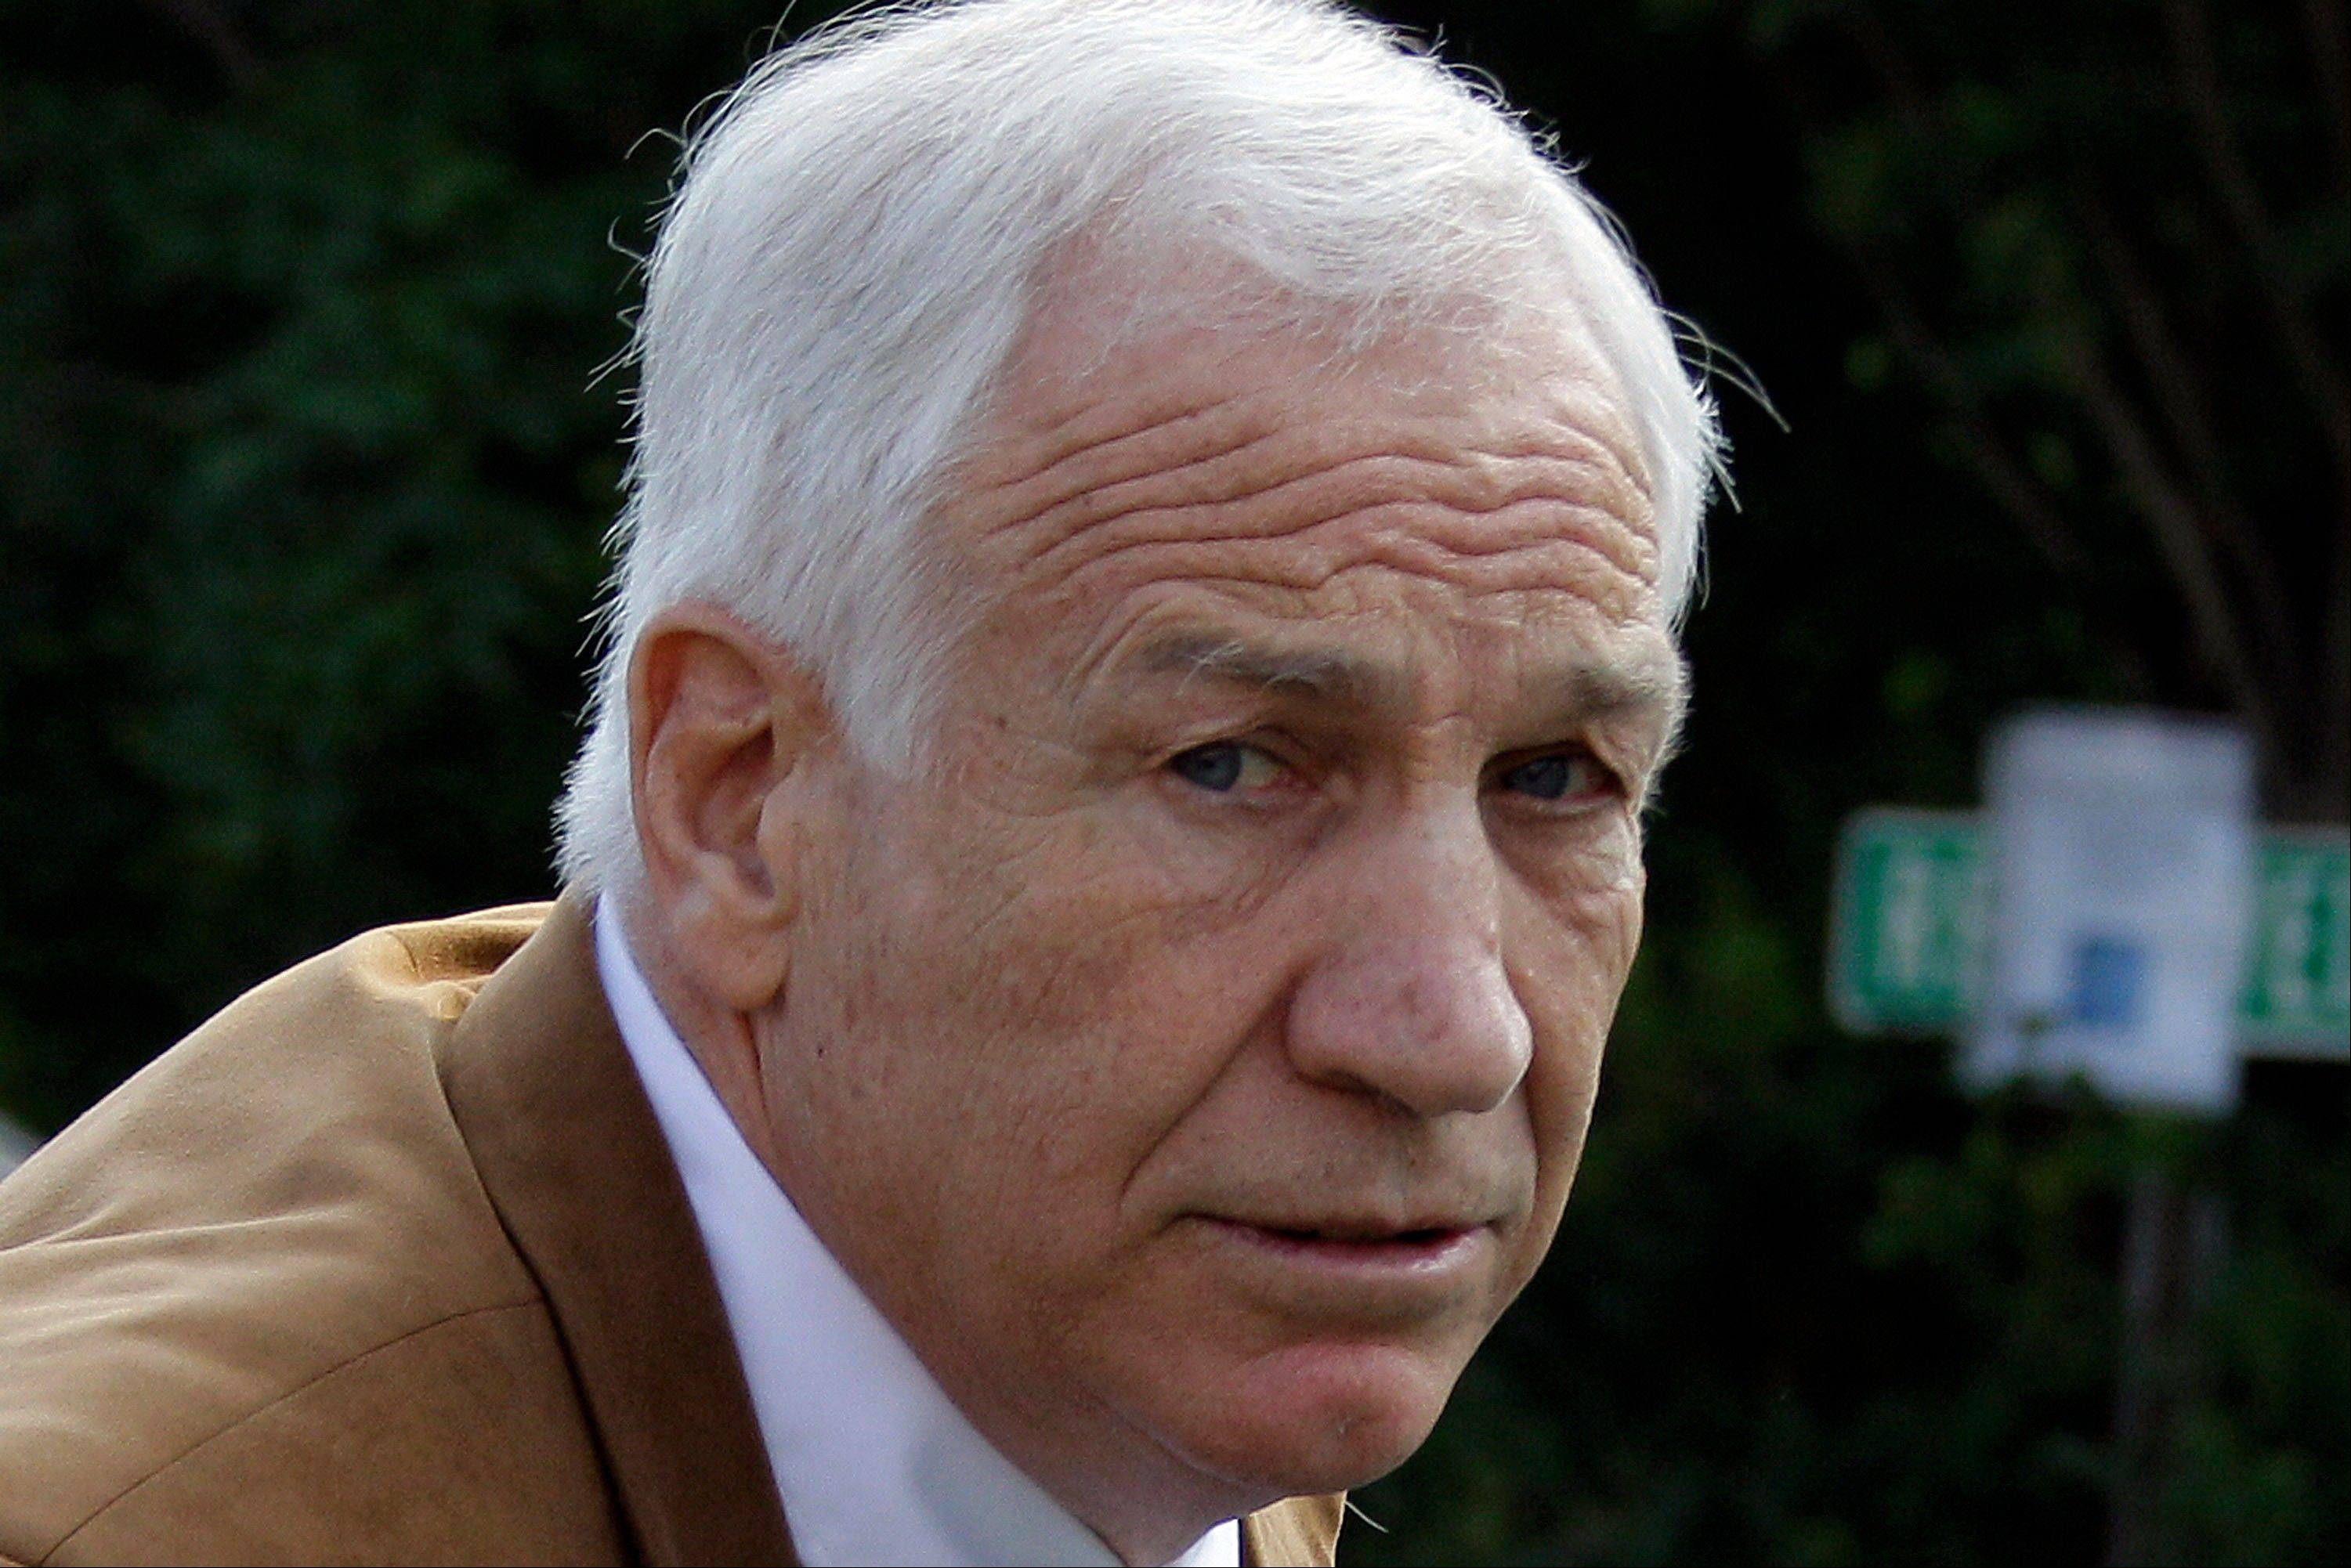 Former Penn State assistant football coach Jerry Sandusky should not get a new trial after being convicted of sexually abusing 10 boys, a Pennsylvania appeals court ruled Wednesday.